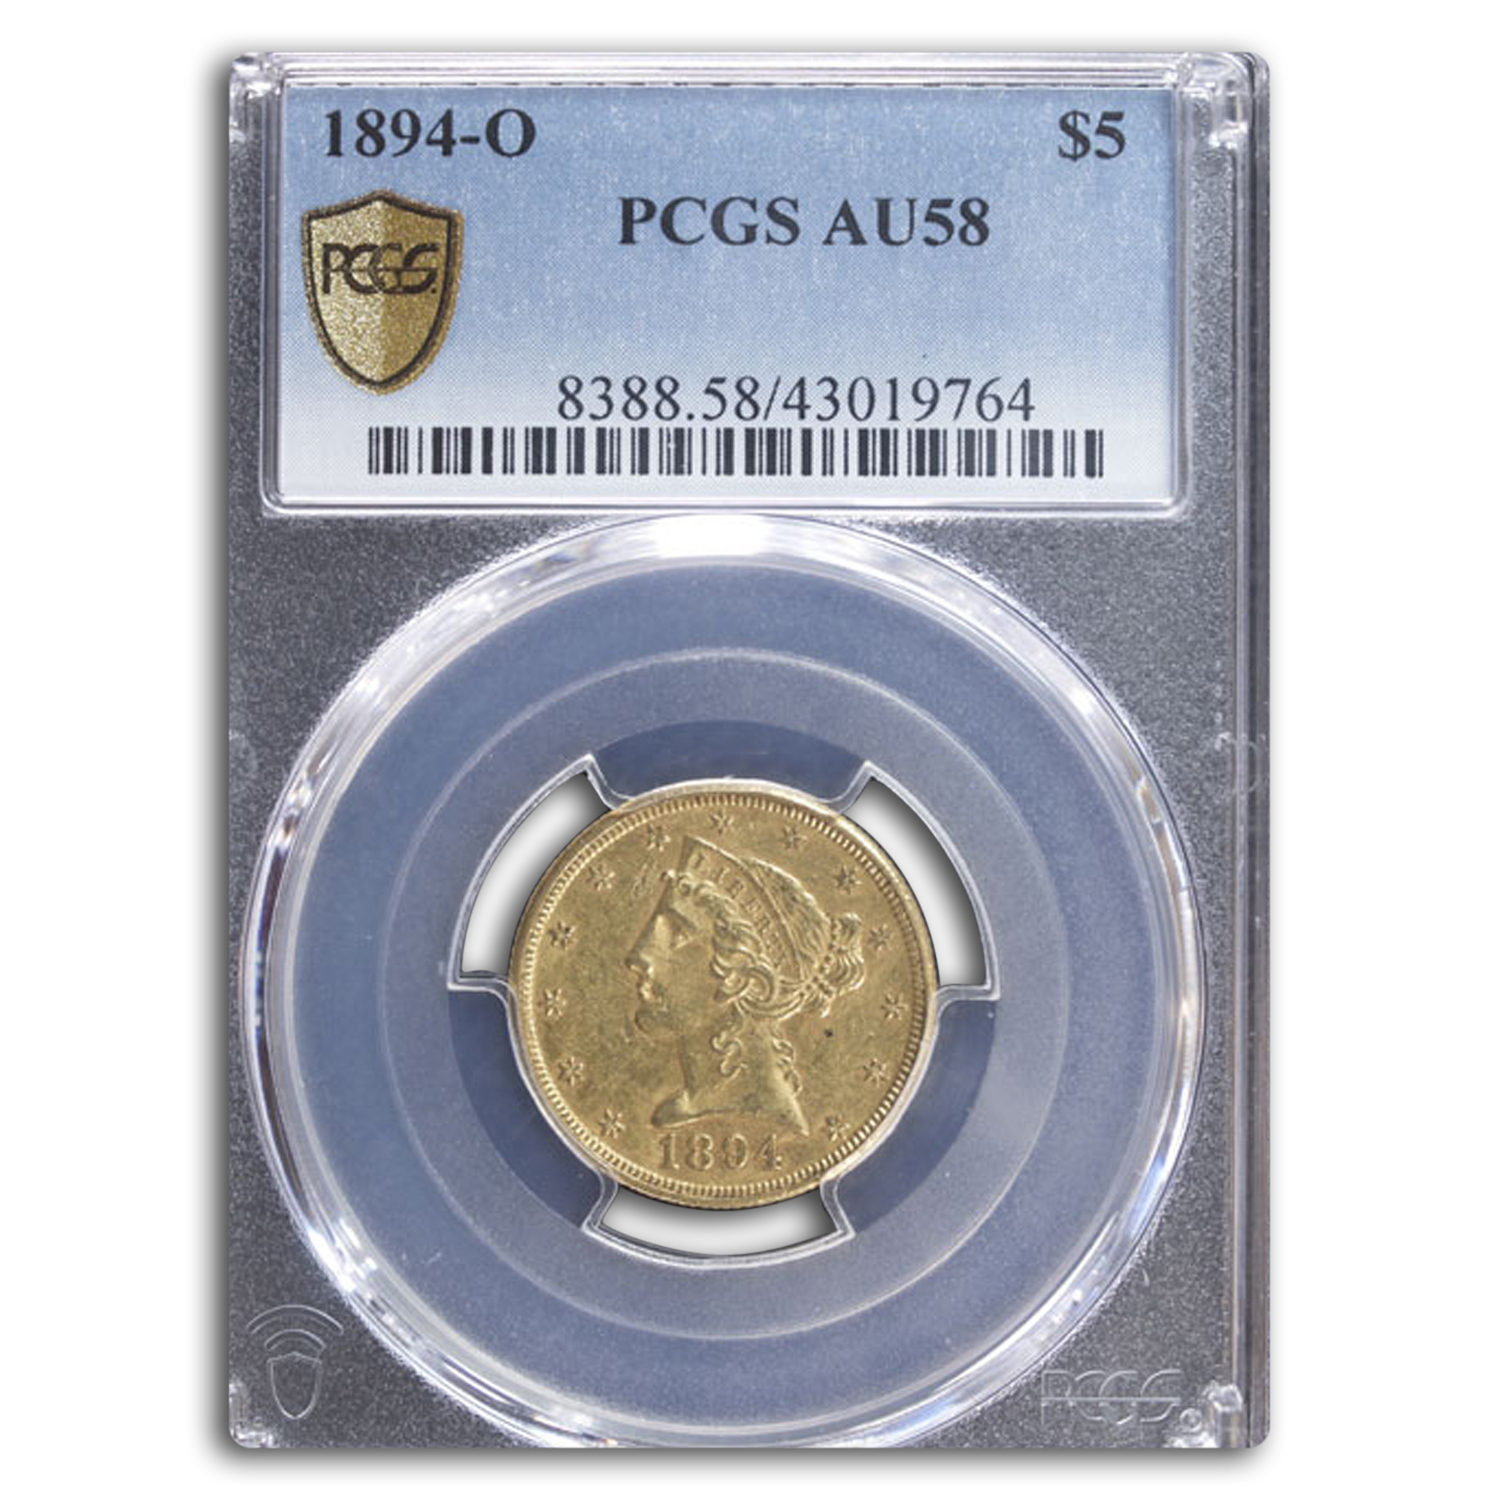 1894-O $5 Liberty Gold Half Eagle - AU-58 PCGS